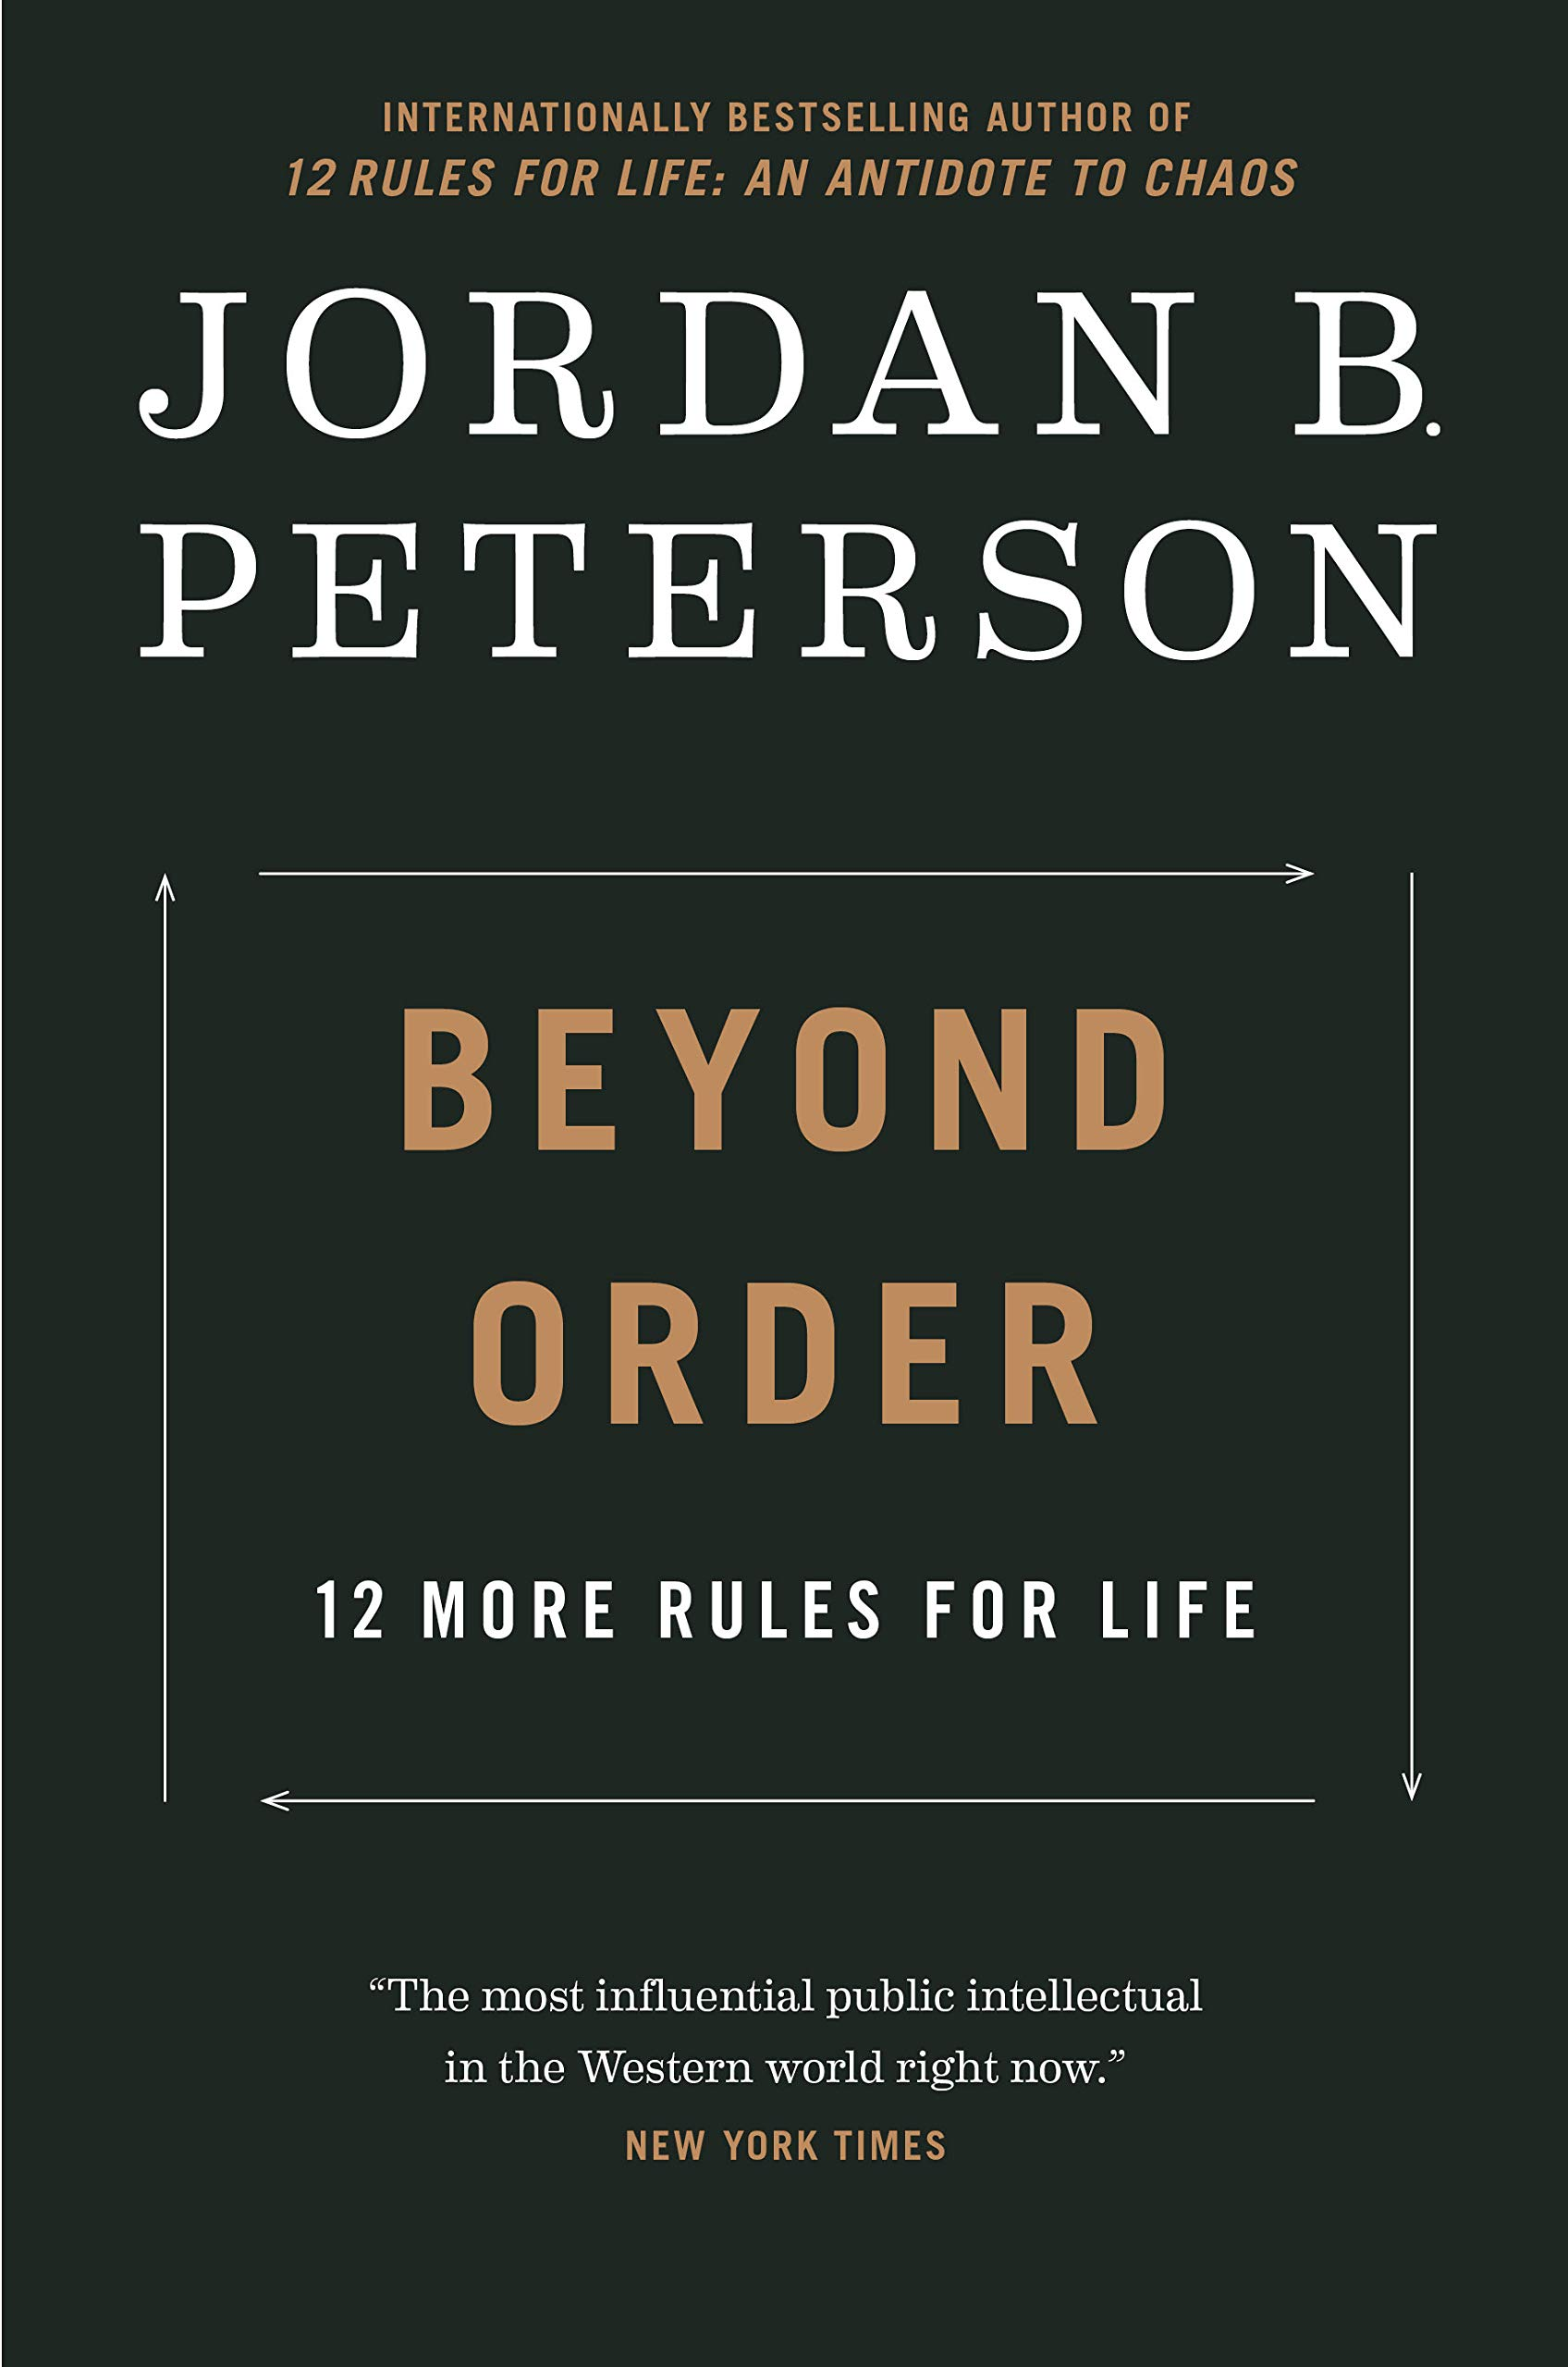 Dr. Jordan Peterson's 42 Rules for Life. The origins to his book 12 Rules for Life: An Antidote to Chaos